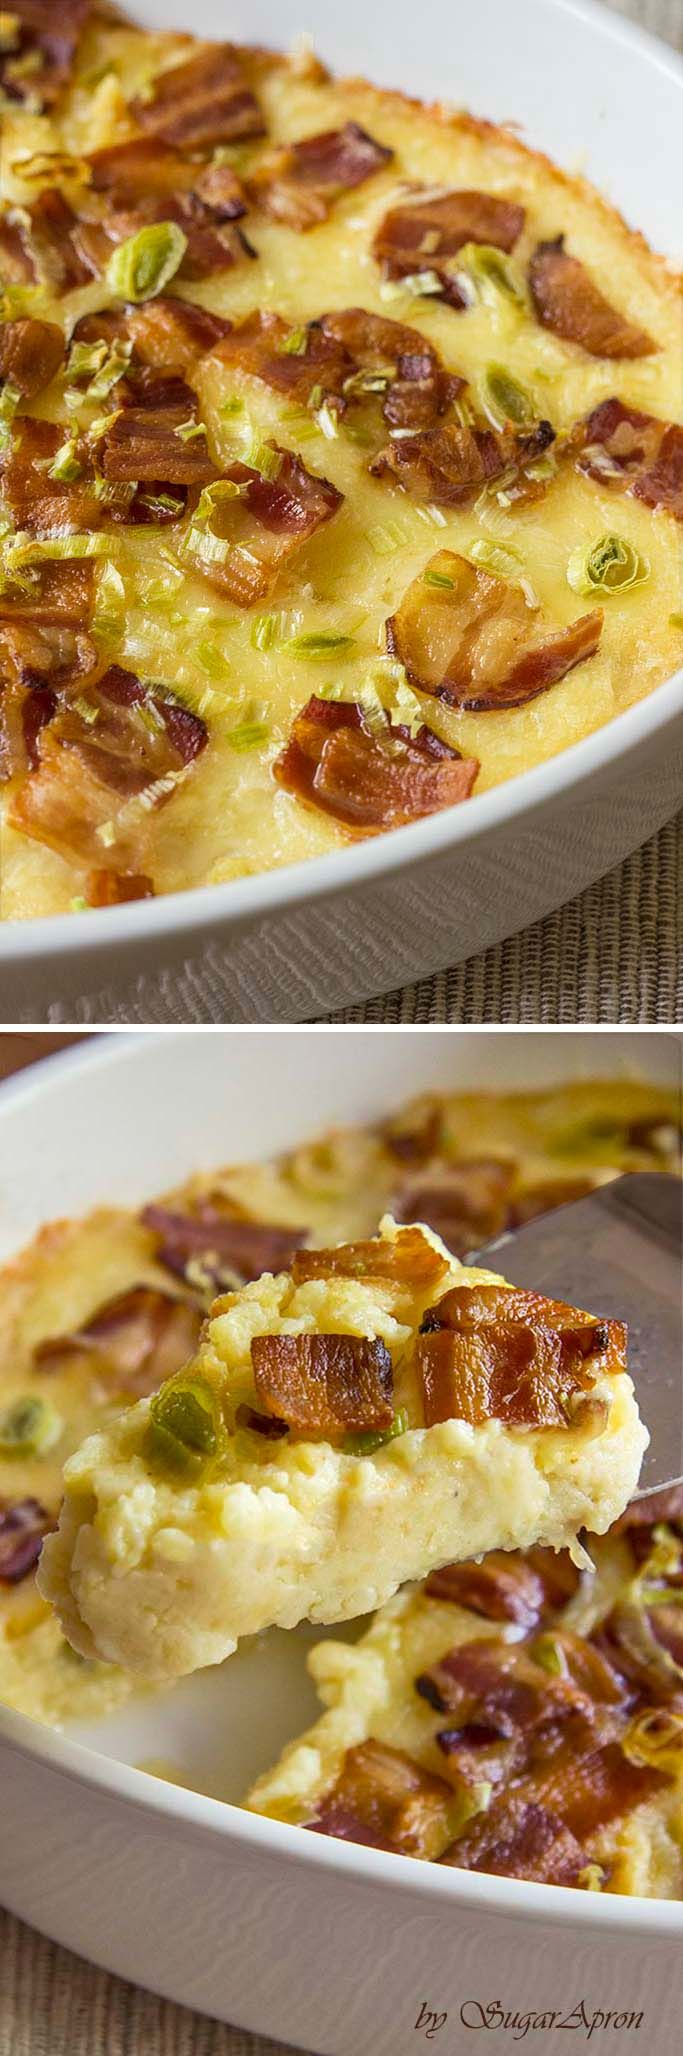 Twice Baked Potatoes Casserole with Cream Cheese, Bacon, and Garlic.  Breakfast, dinner, or lunch!